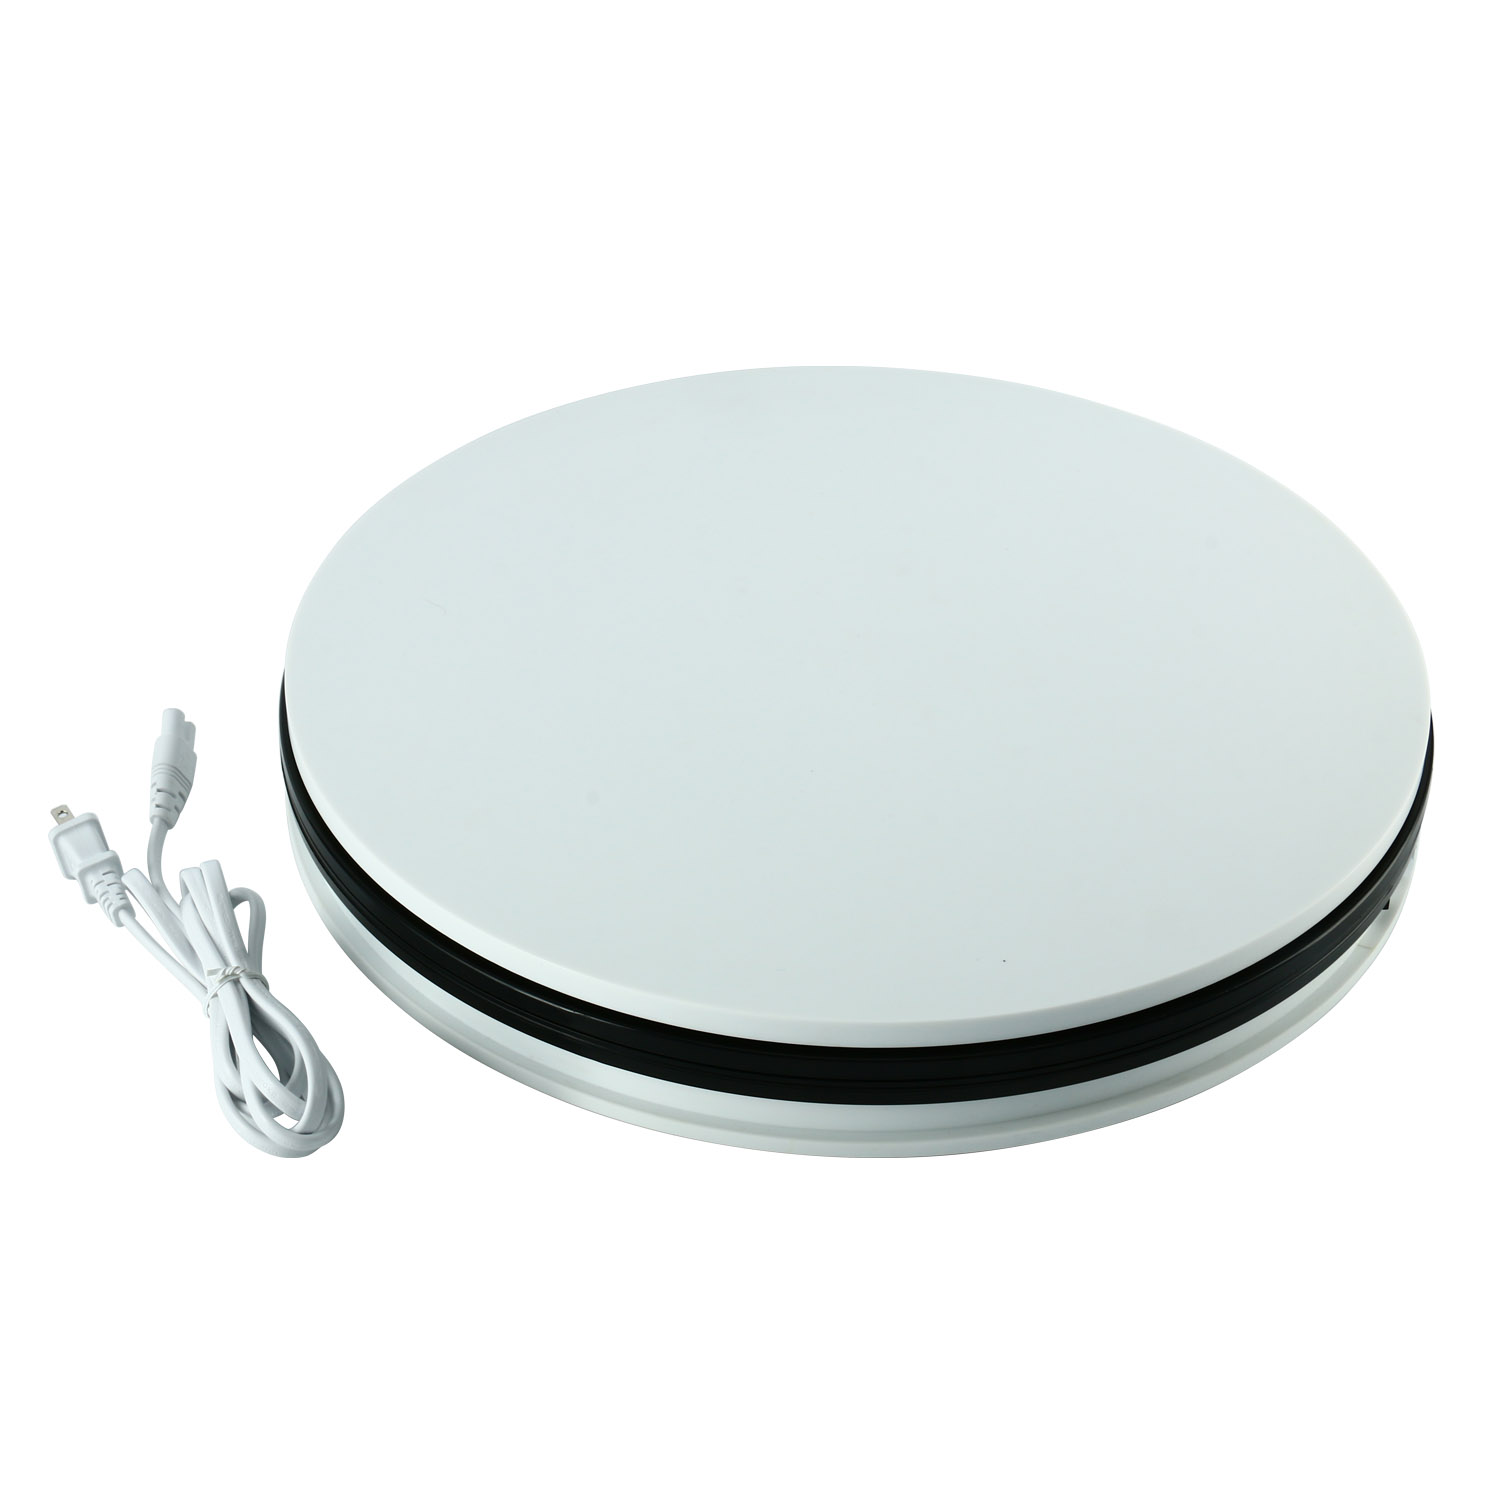 Details About Display Stand Electric Motorized Turntable 360 Rotating 110lbs Load 17 7 White